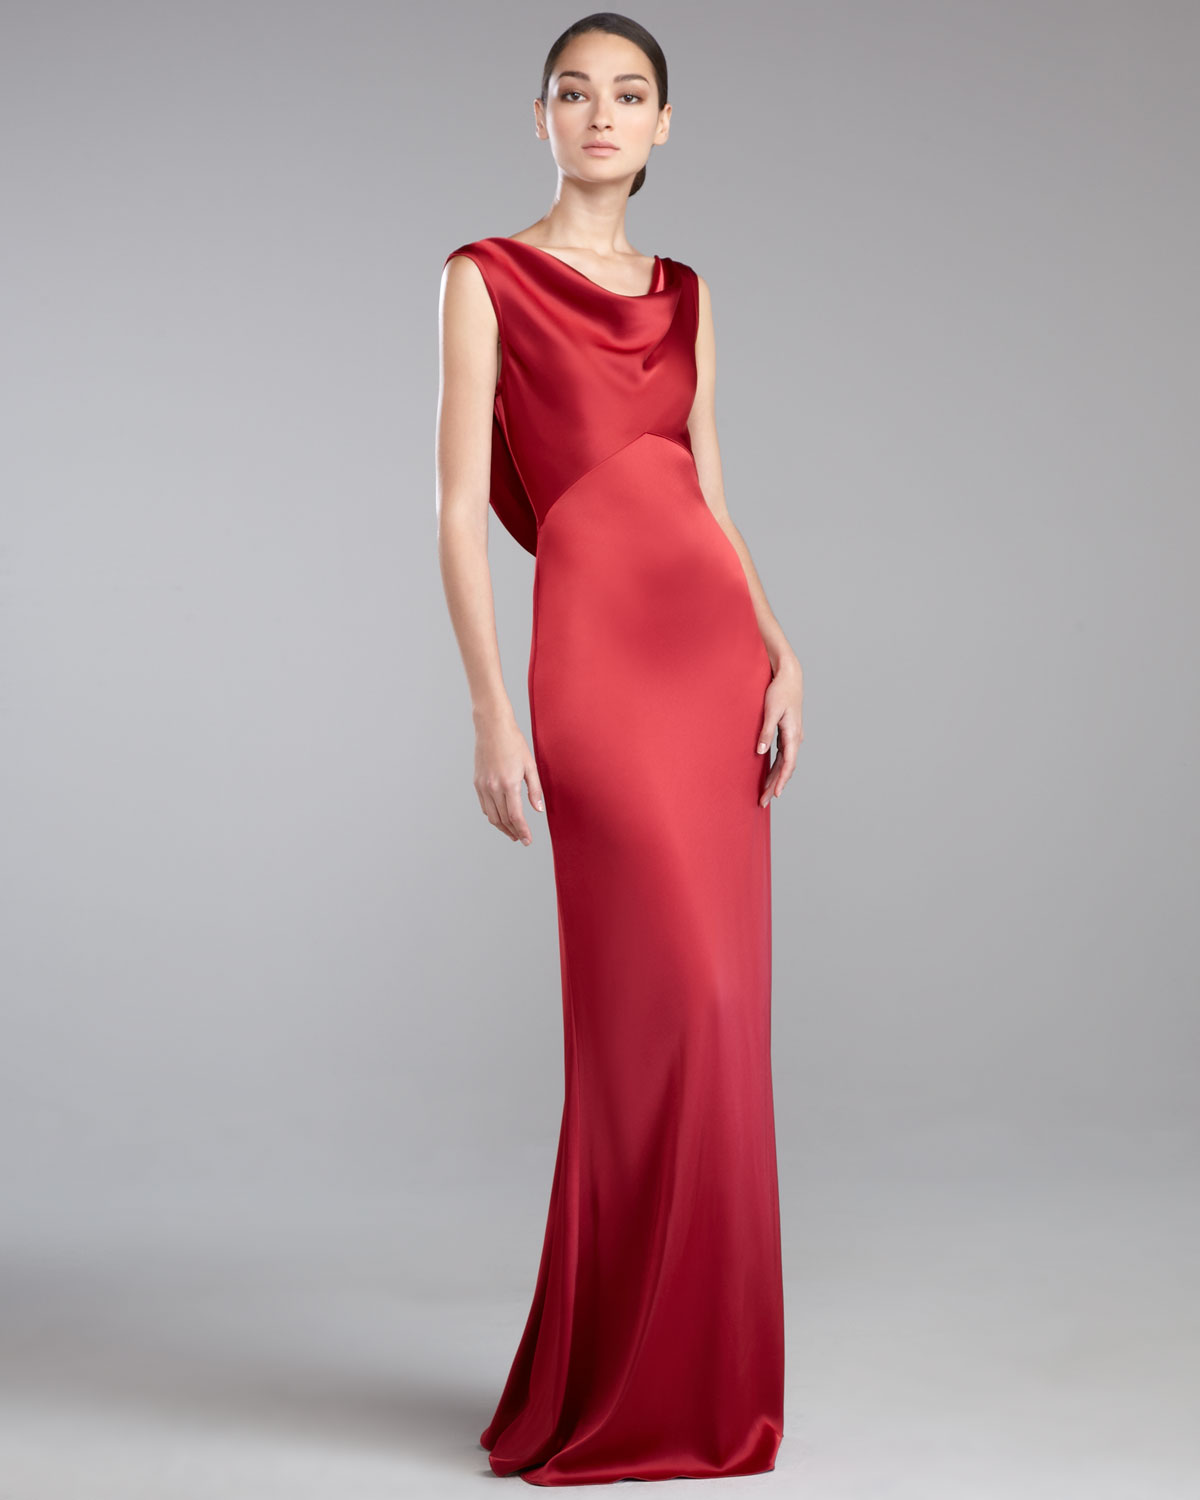 Cowl Neck Satin Wedding Dresses: St. John Liquid Satin Cowlneck Gown In Red